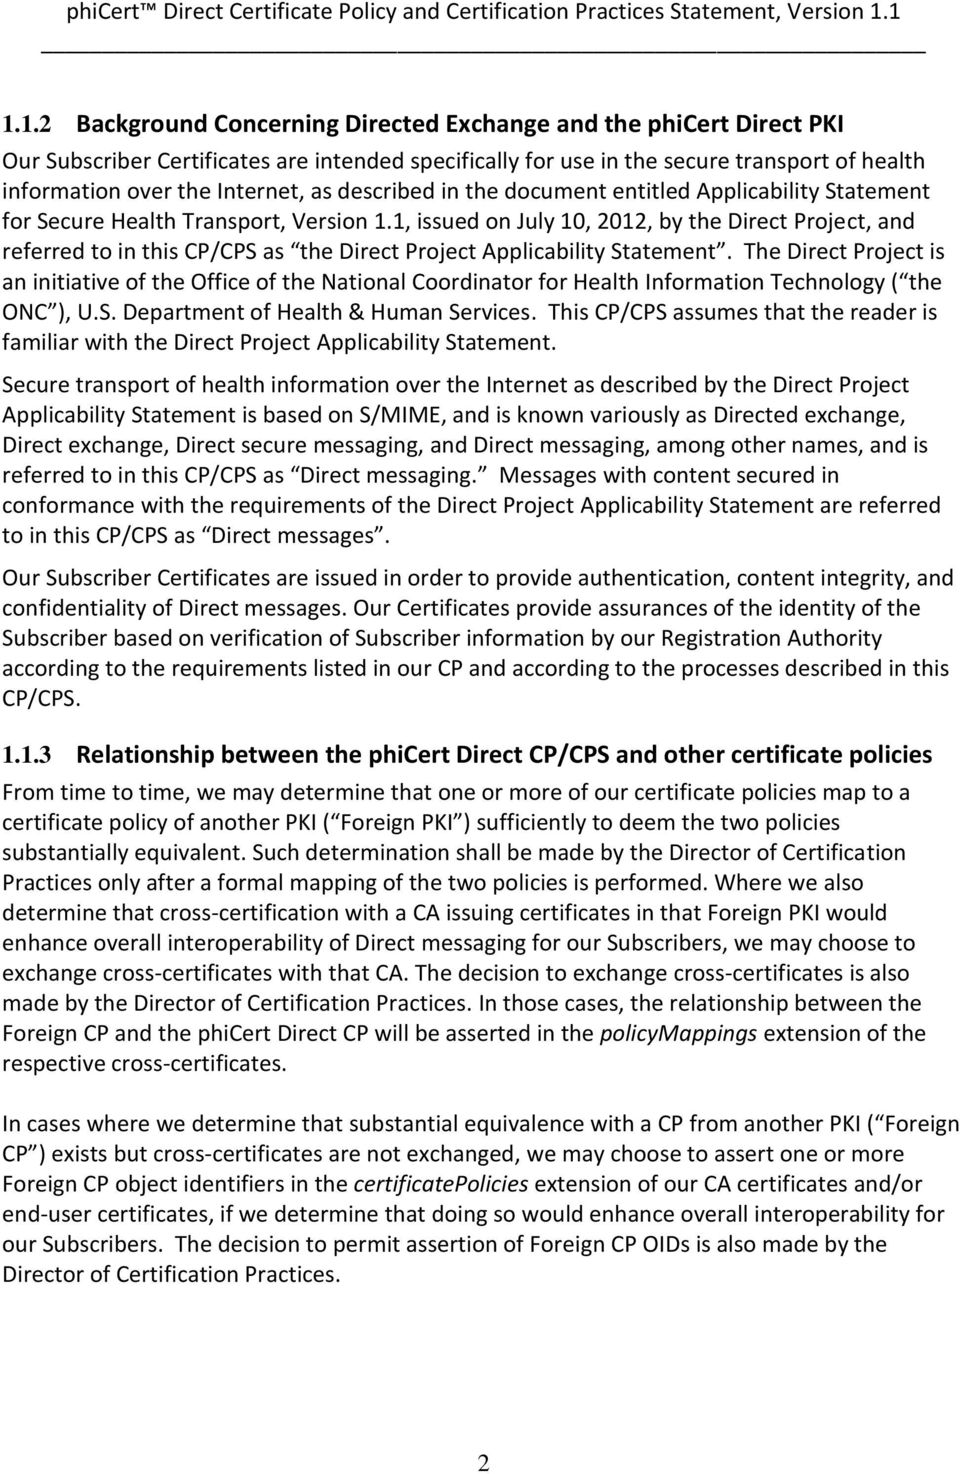 1, issued on July 10, 2012, by the Direct Project, and referred to in this CP/CPS as the Direct Project Applicability Statement.